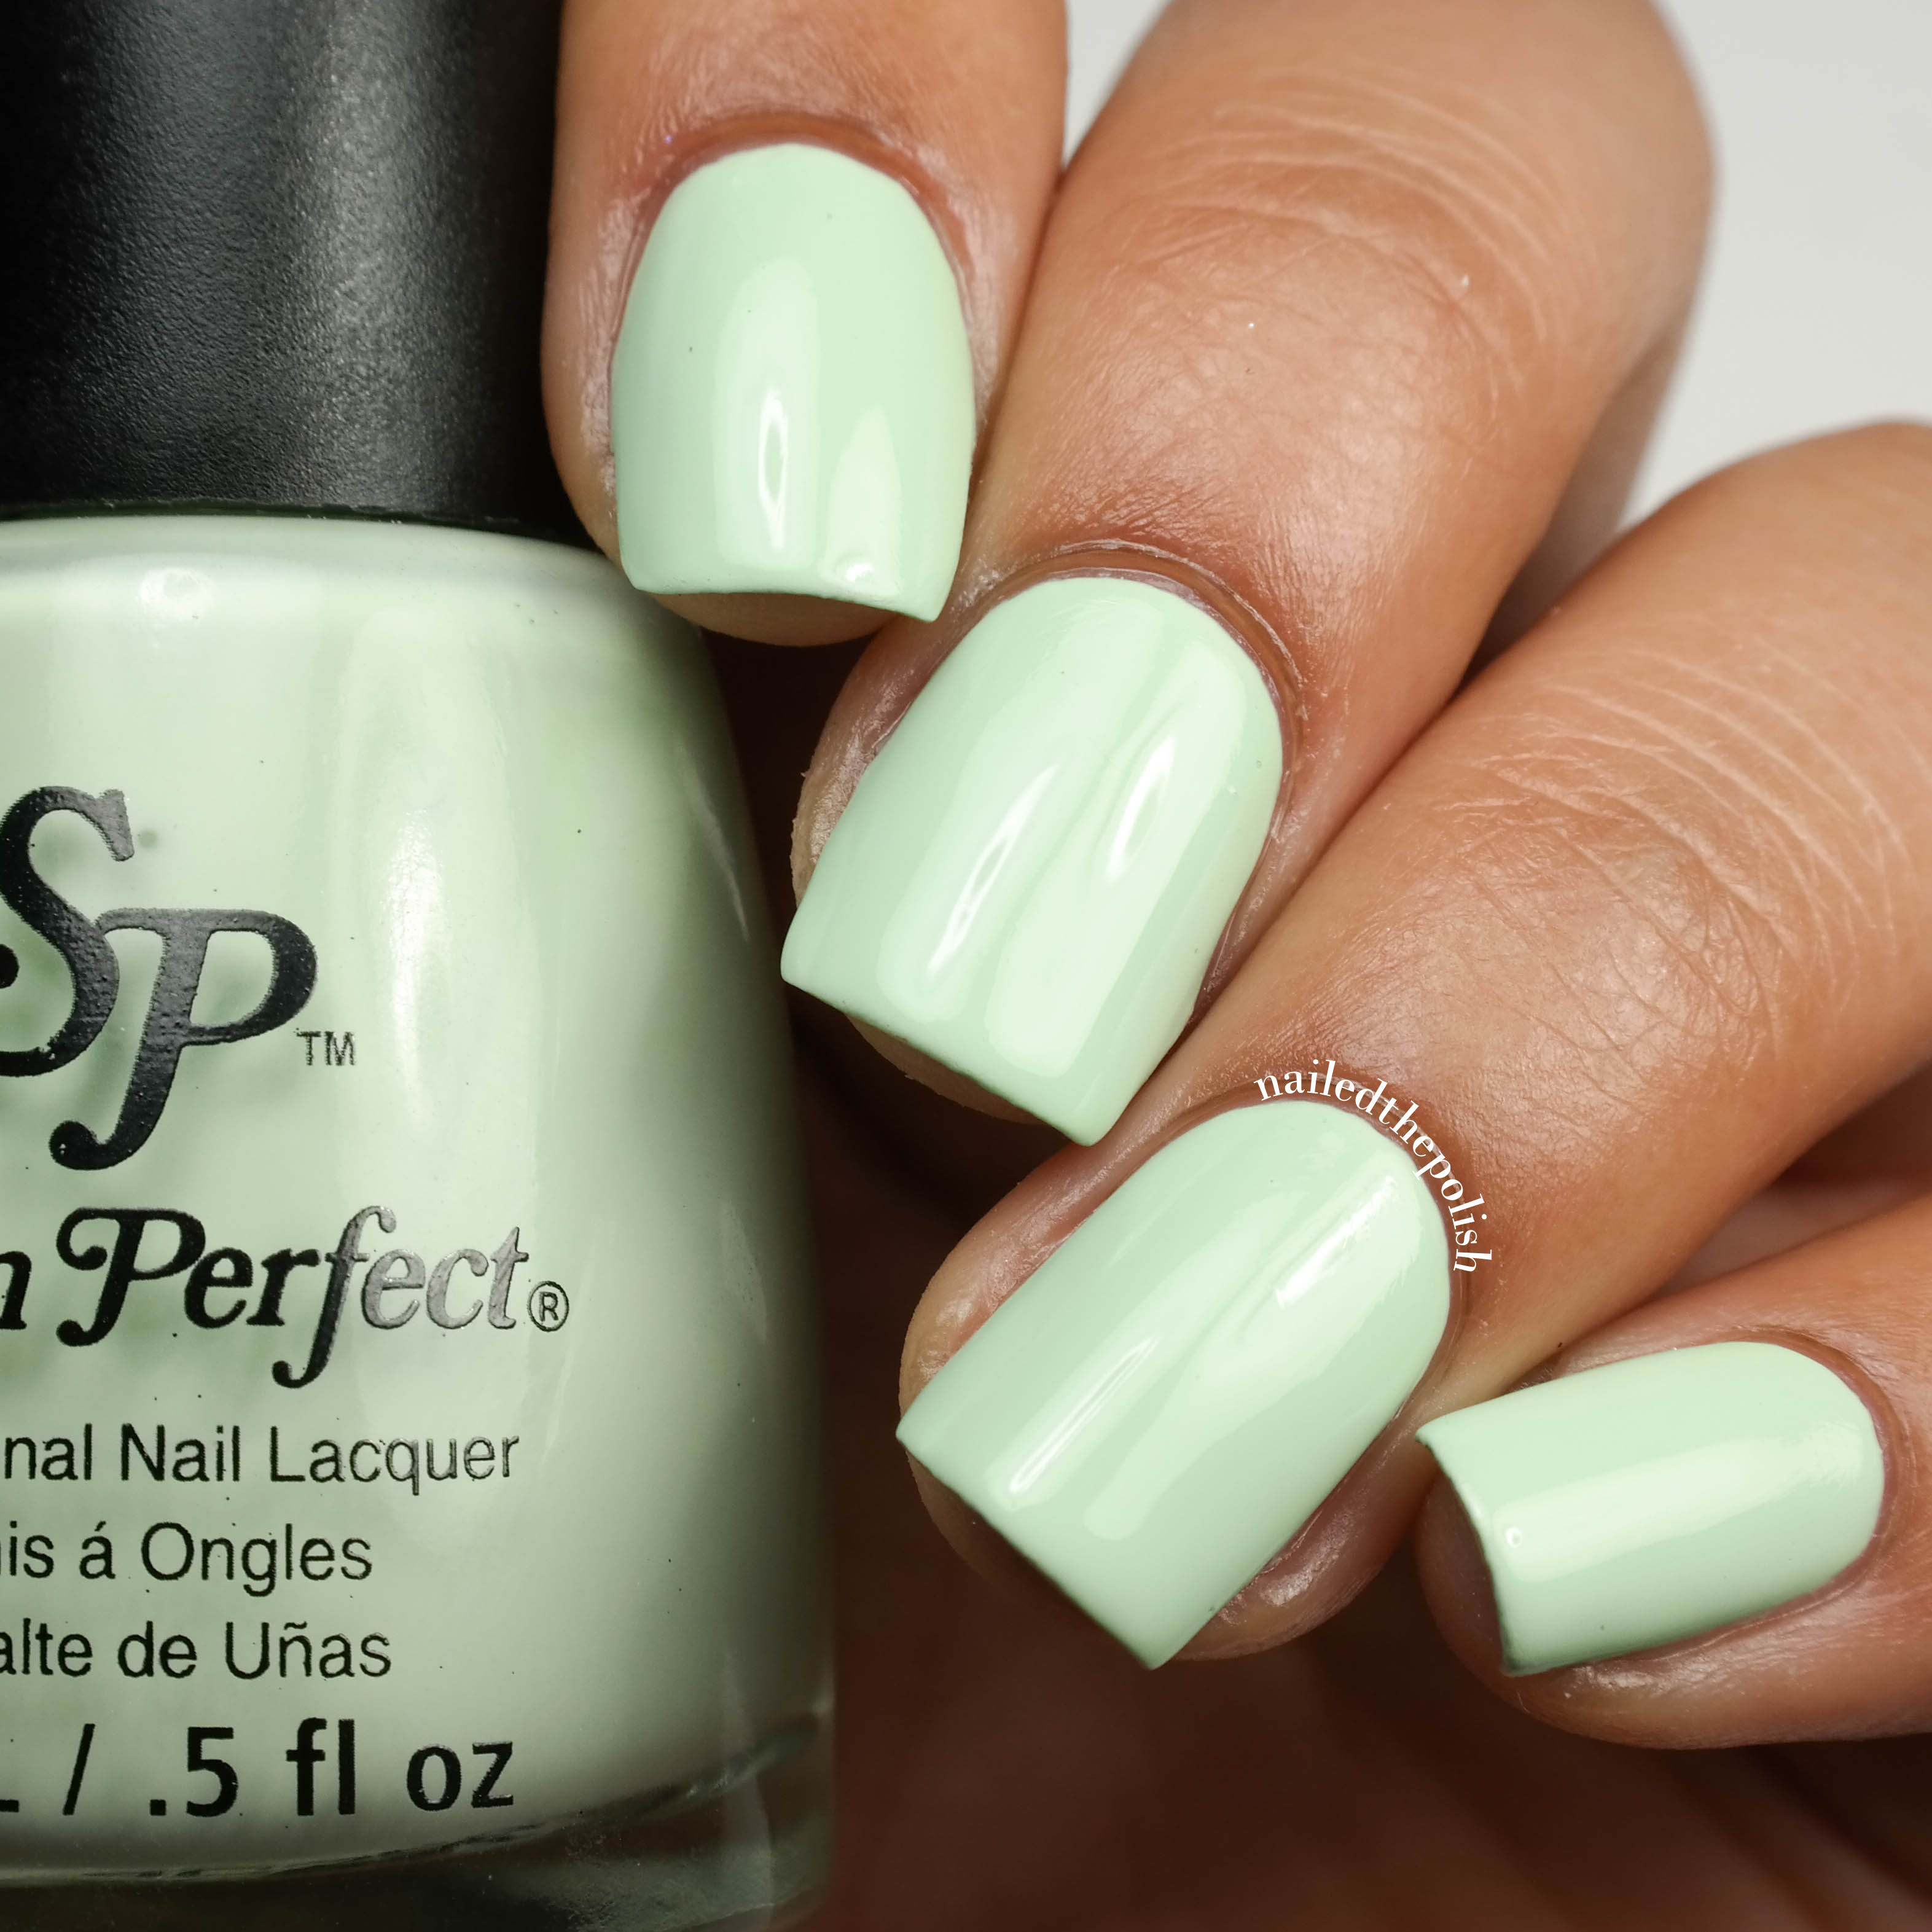 Mint Julep is a mint green creme polish. Shown here is two coats with top coat. This polish is an old favorite from Salon Perfect. Upon opening my package, ...